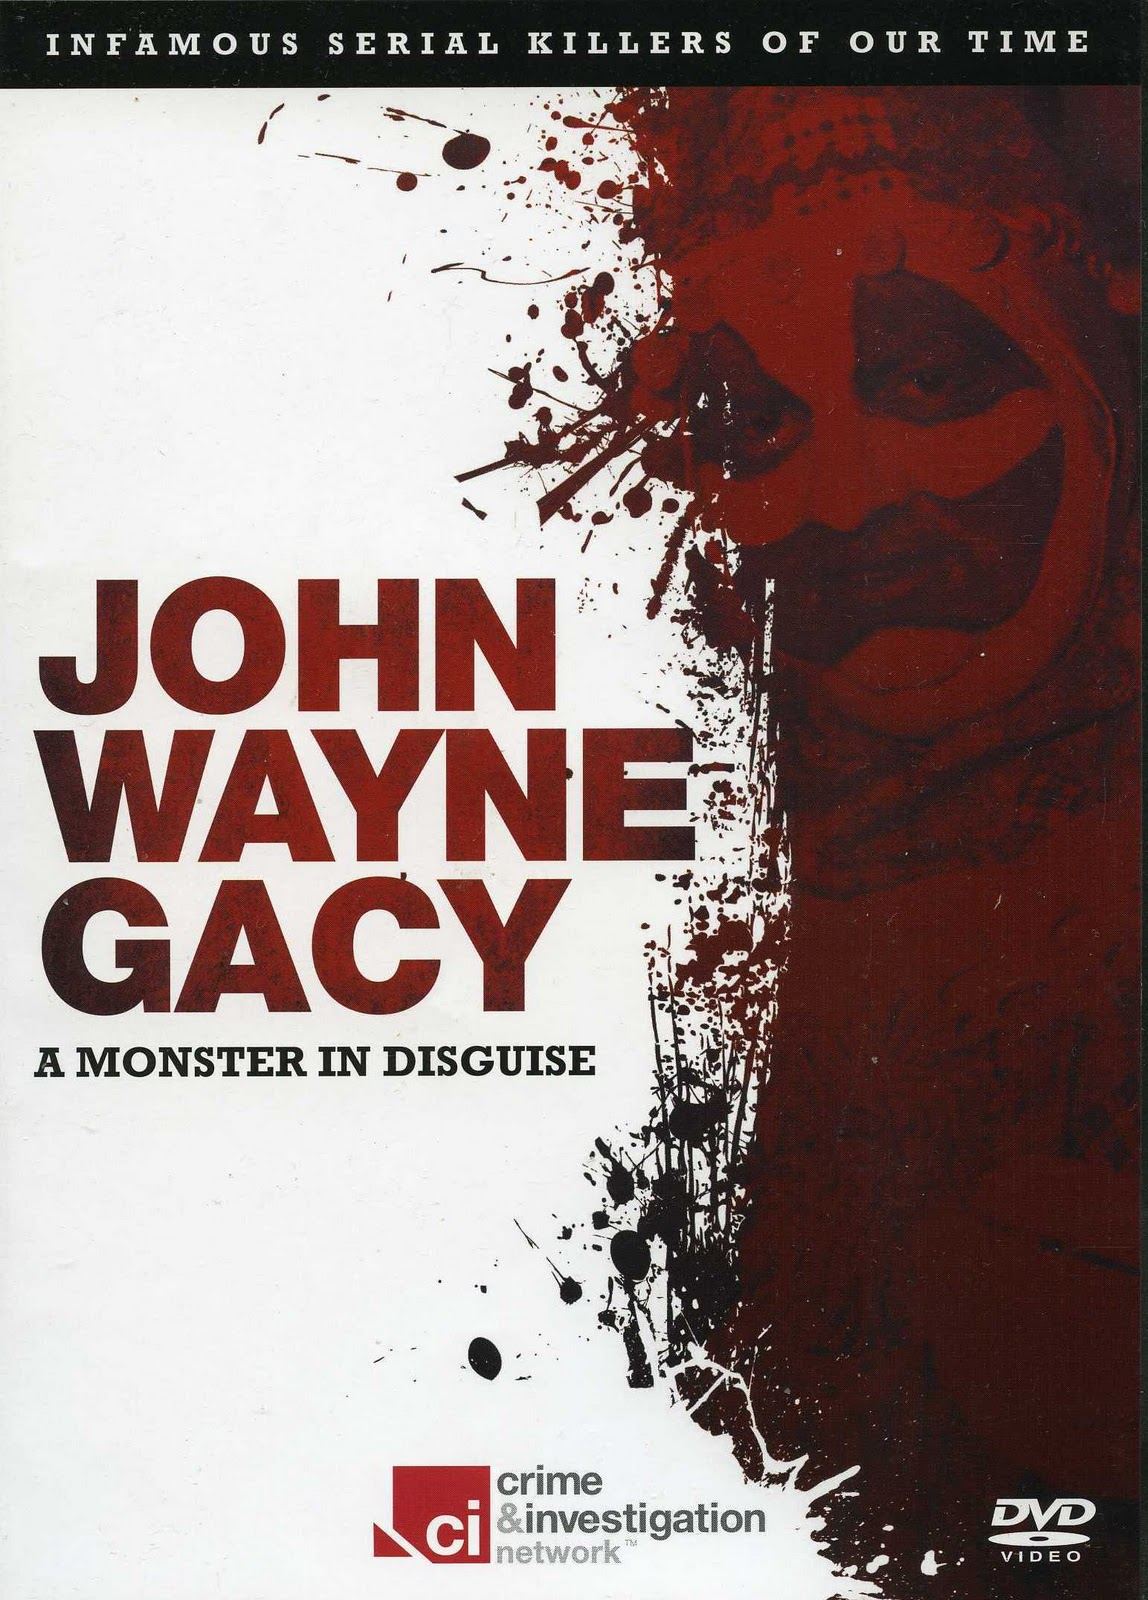 an analysis of the killers mind john wayne gacy A critical analysis of research related to the criminal mind of serial killers by cindy a pokel a research paper submitted in partial fulfillment of the.